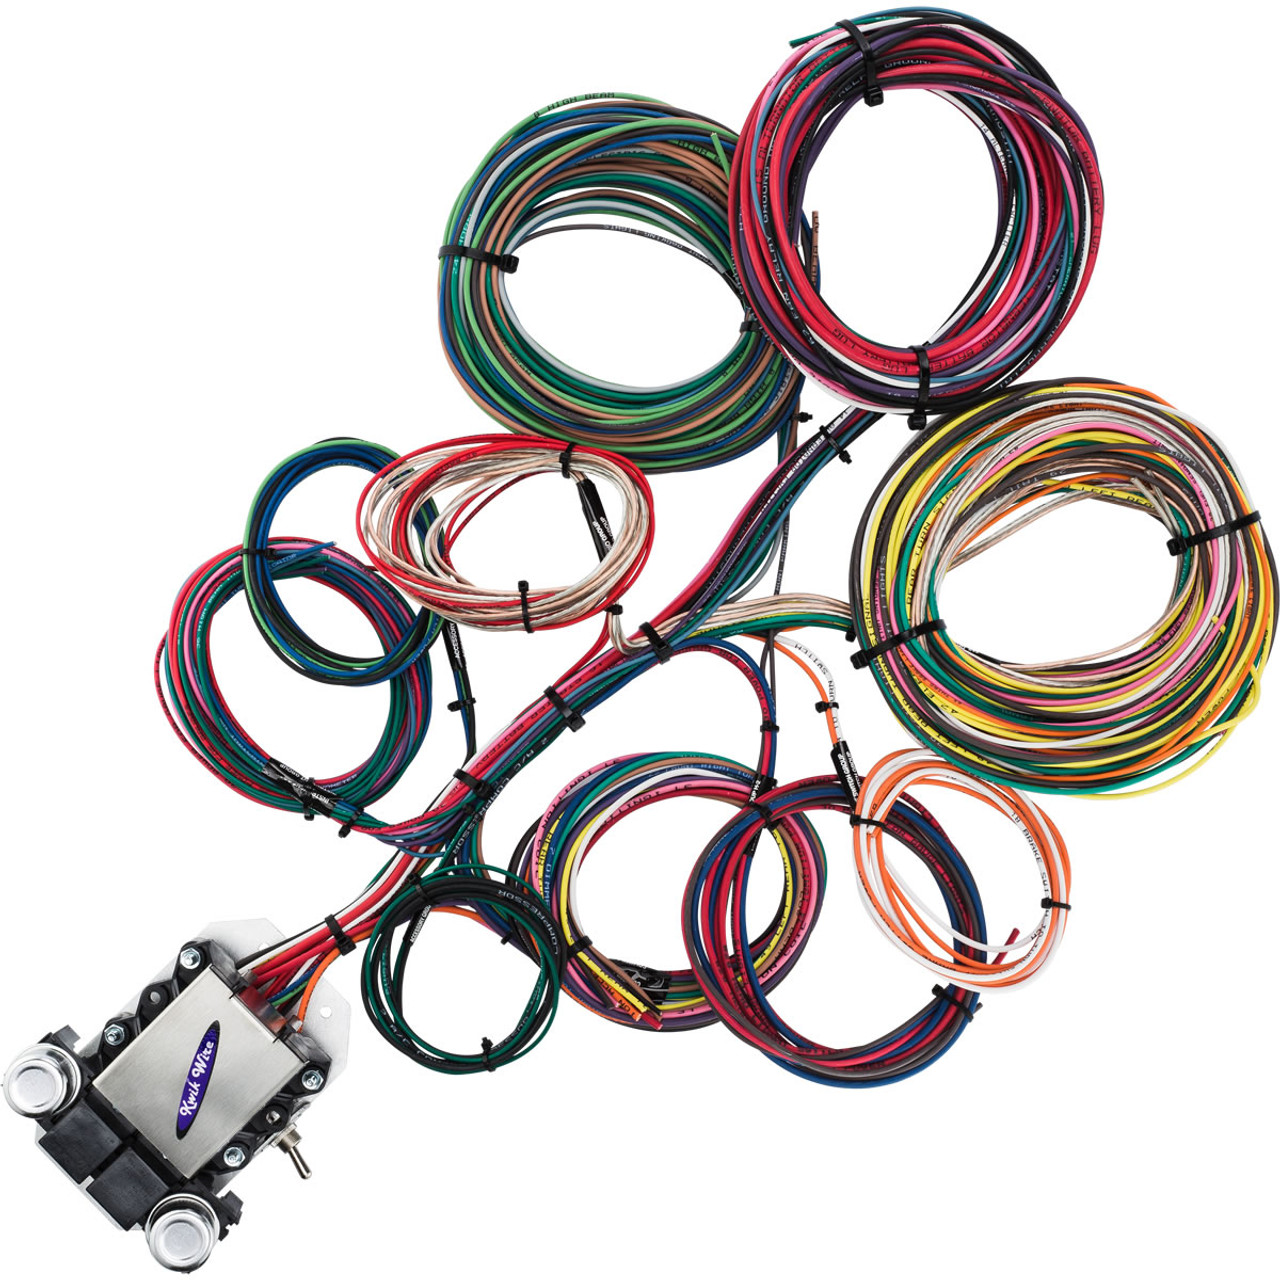 14 Circuit Ford Wire Harness Electrify Your Ride Power Relay